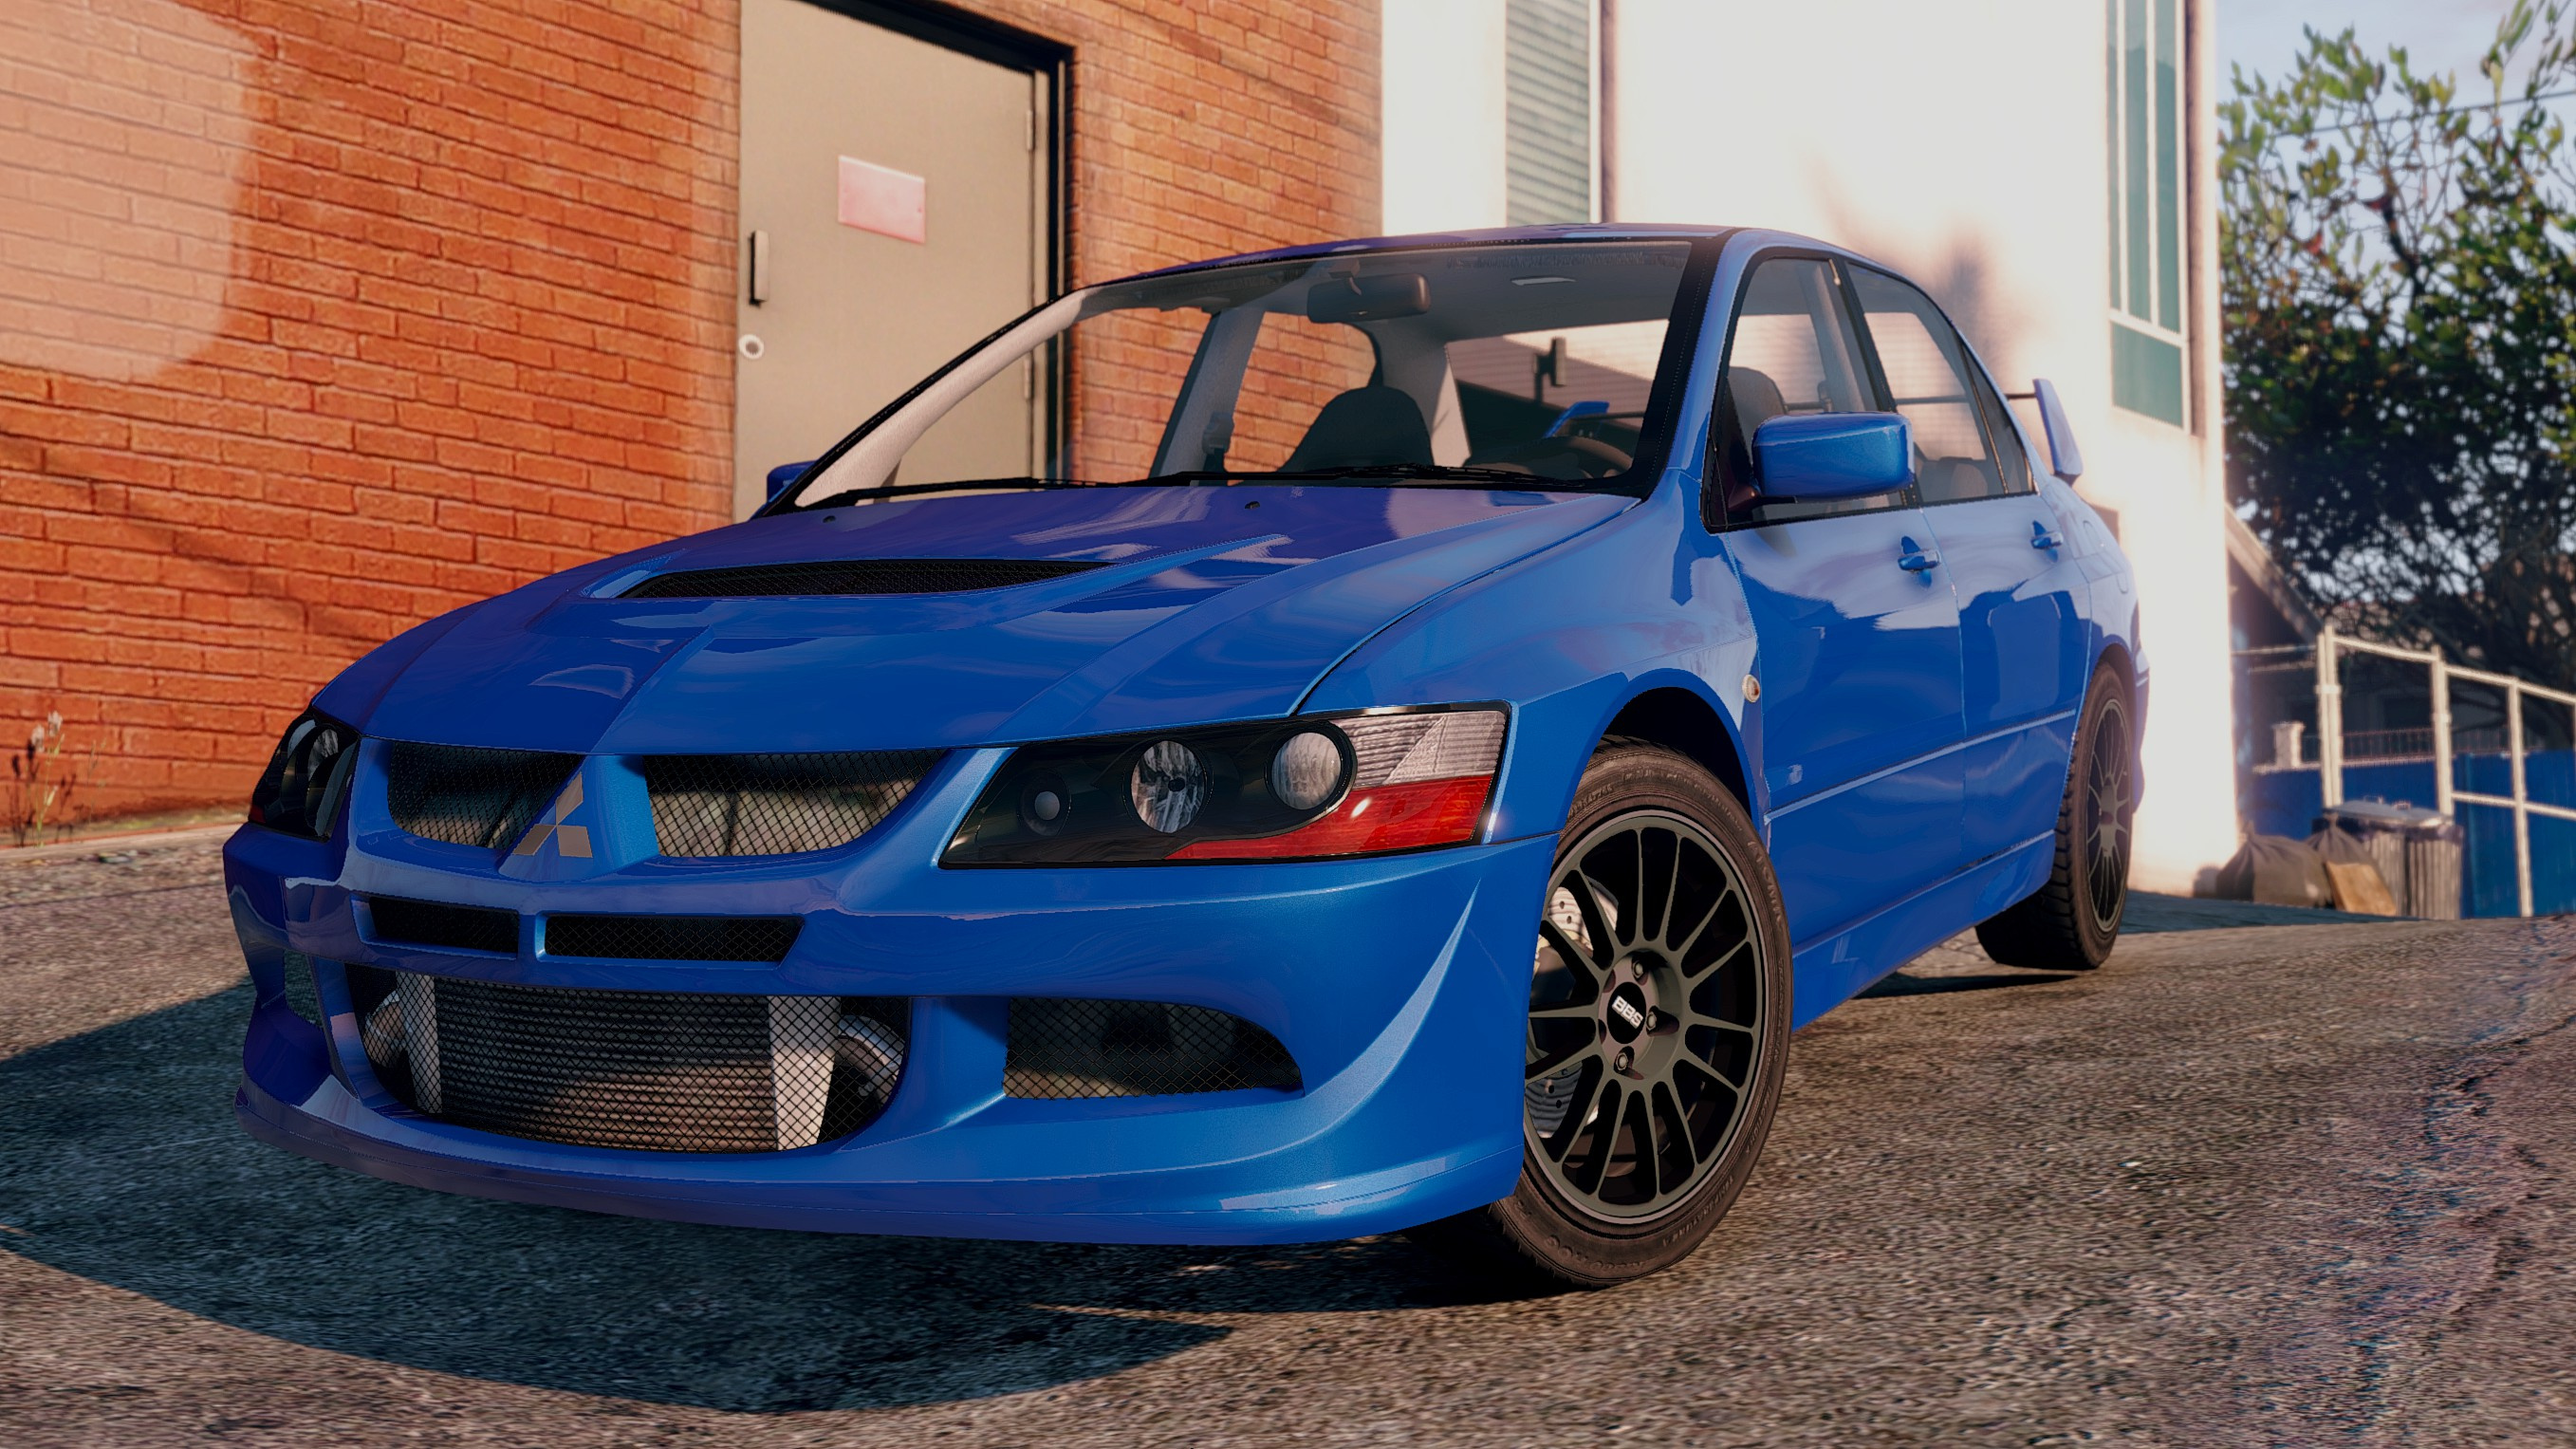 Mitsubishi lancer evo 8 mr tuning gta5 mods mitsubishi lancer evo 8 mr tuning sciox Images